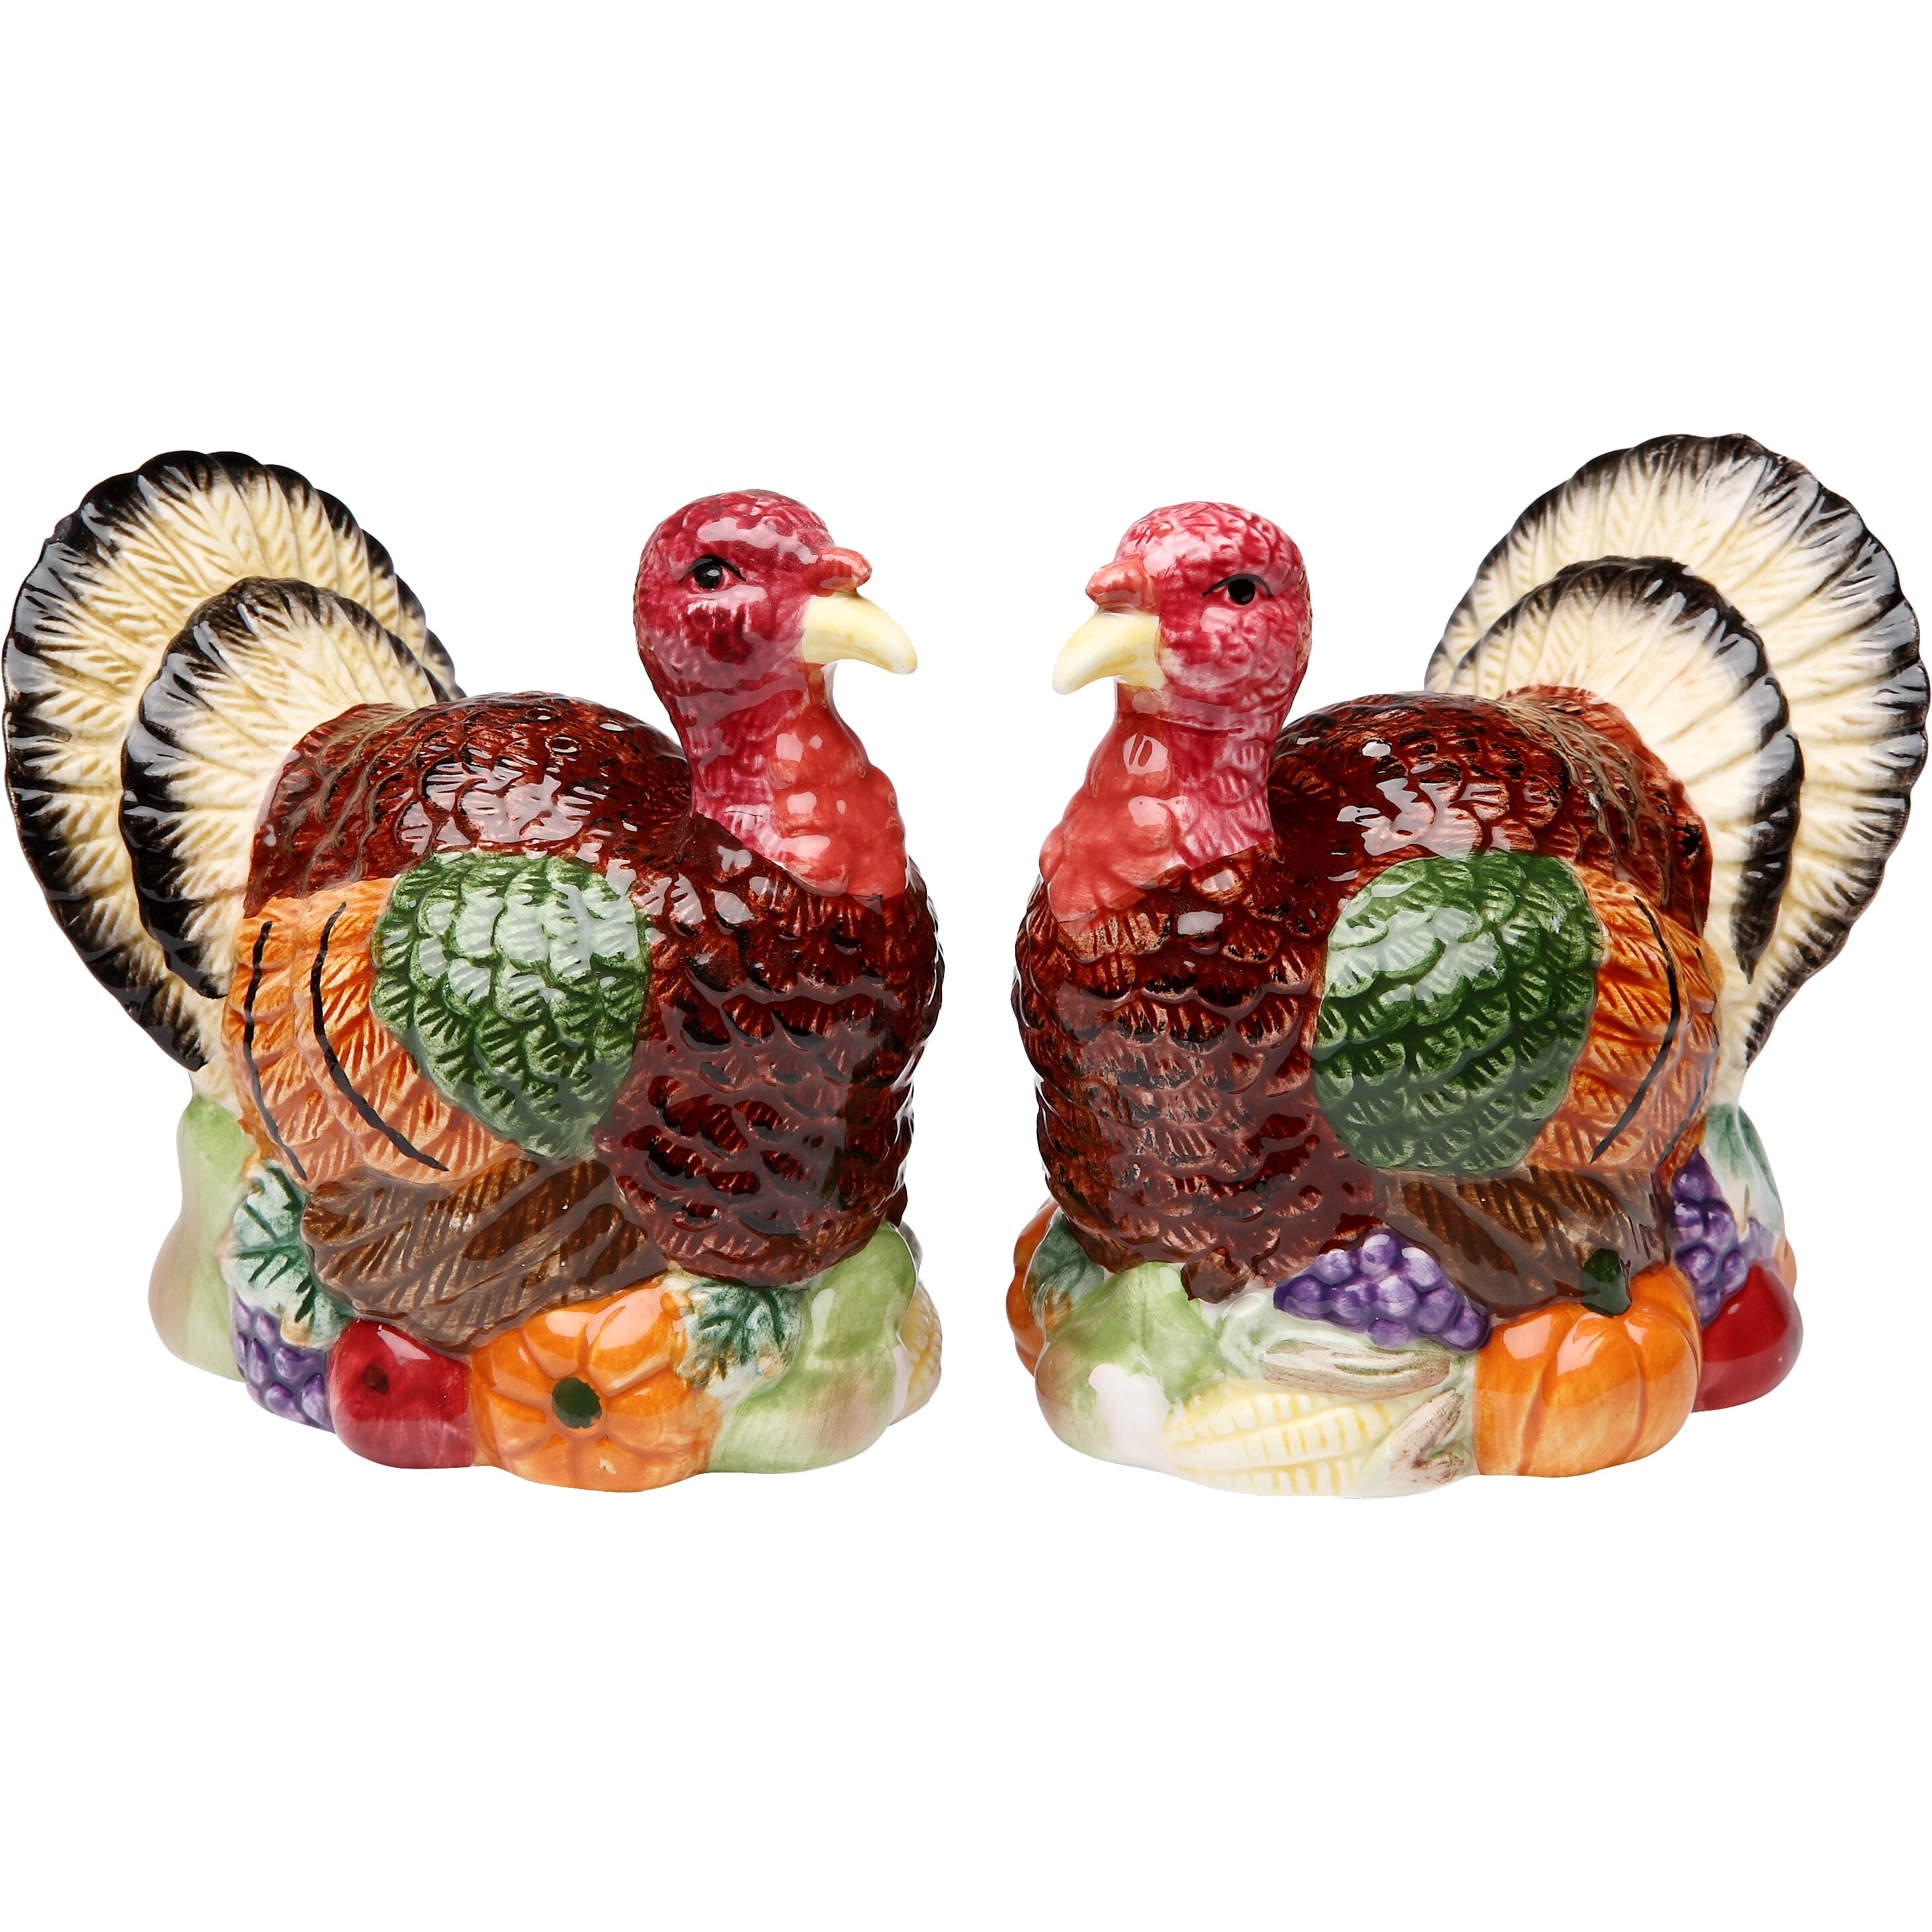 CosmosGifts Turkey Salt and Pepper Set amp Reviews Wayfair : Turkey Salt and Pepper 56540 from www.wayfair.com size 2914 x 2914 jpeg 1437kB